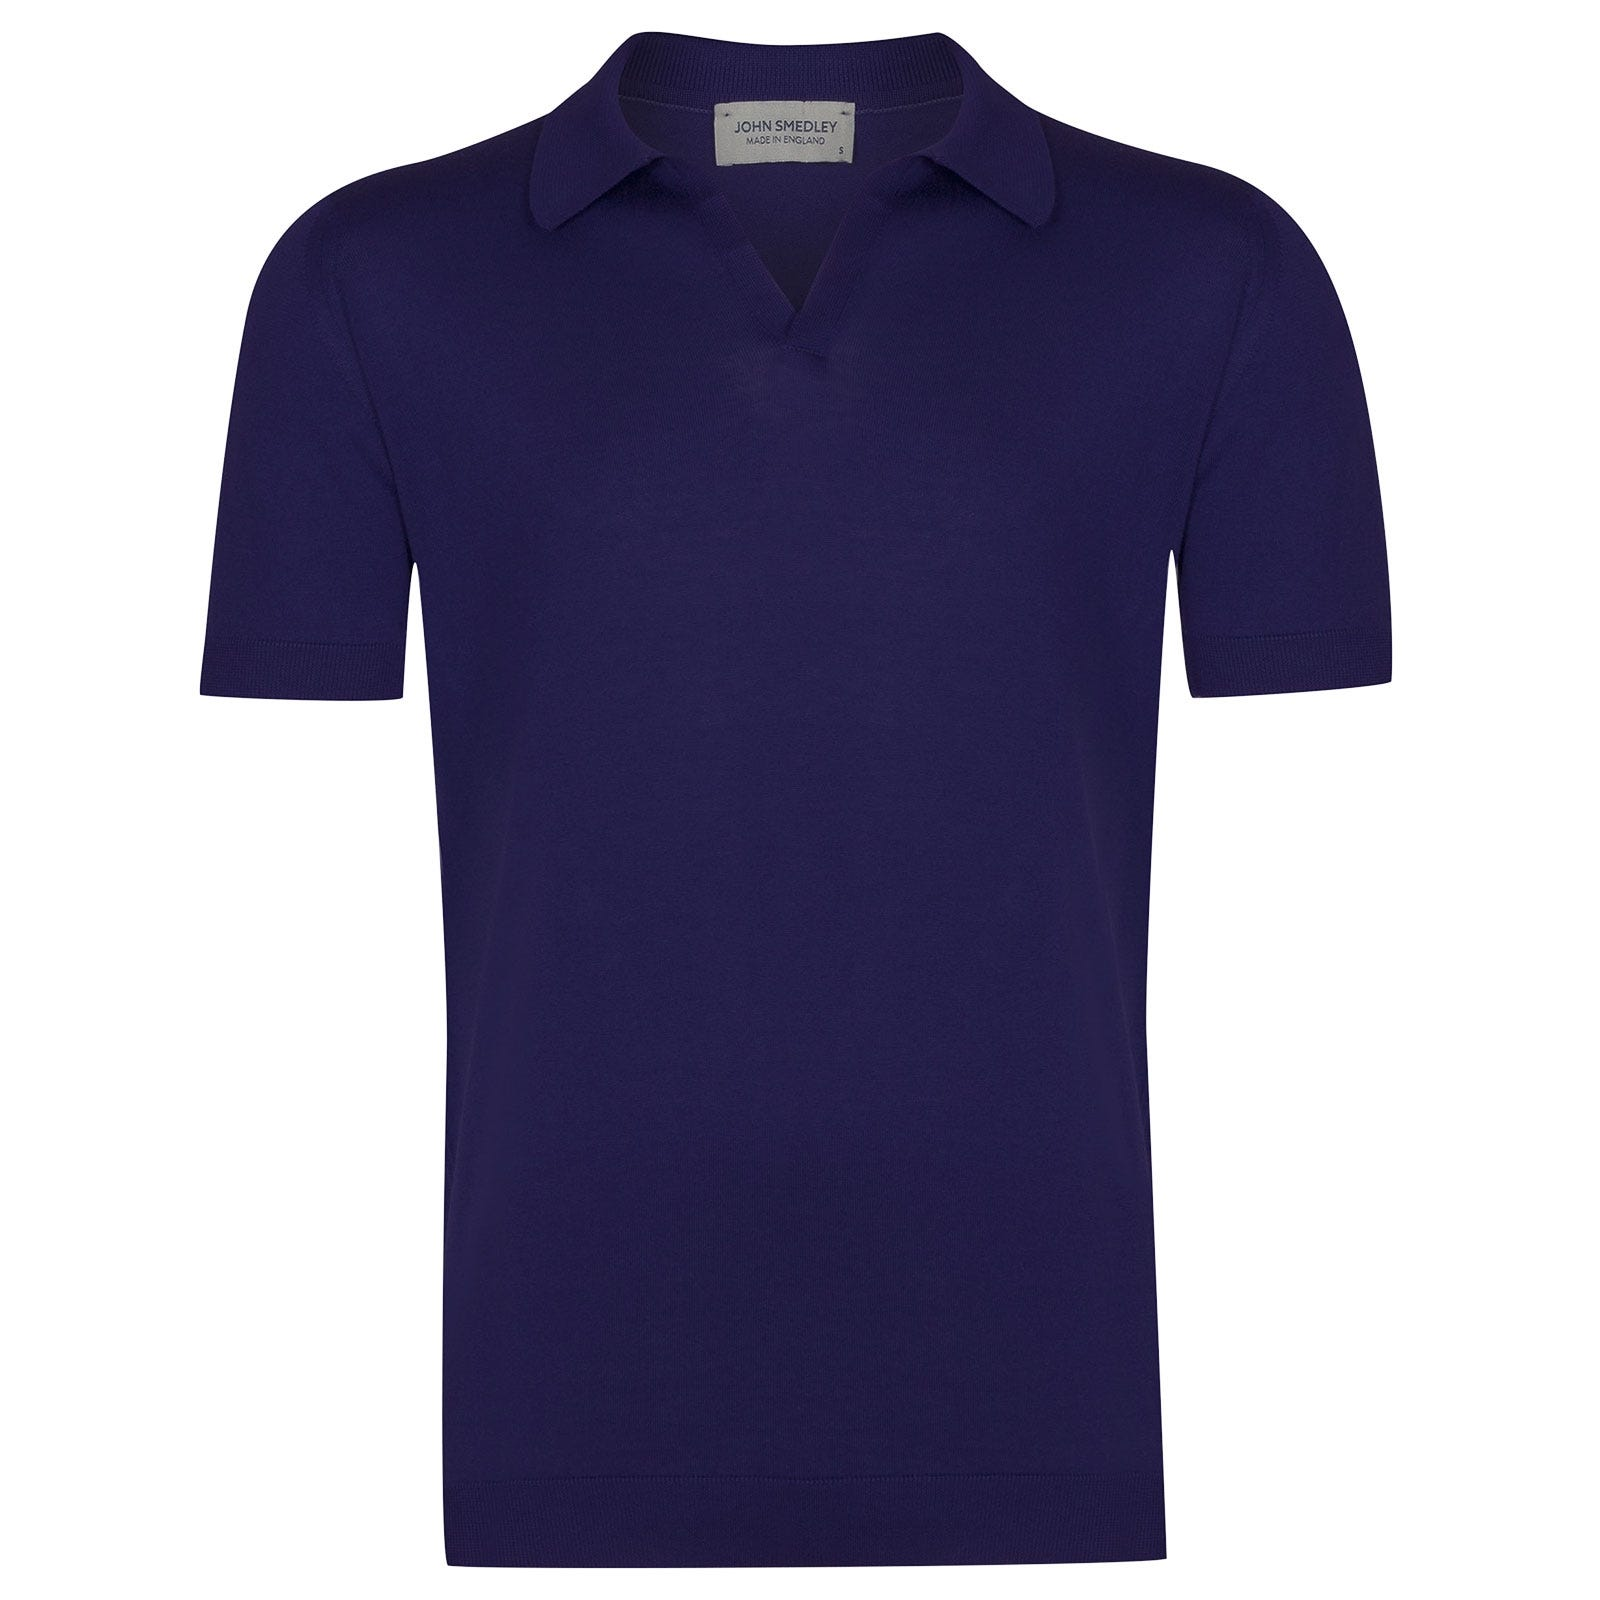 John Smedley Noah Sea Island Cotton Shirt in Serge Blue-XL